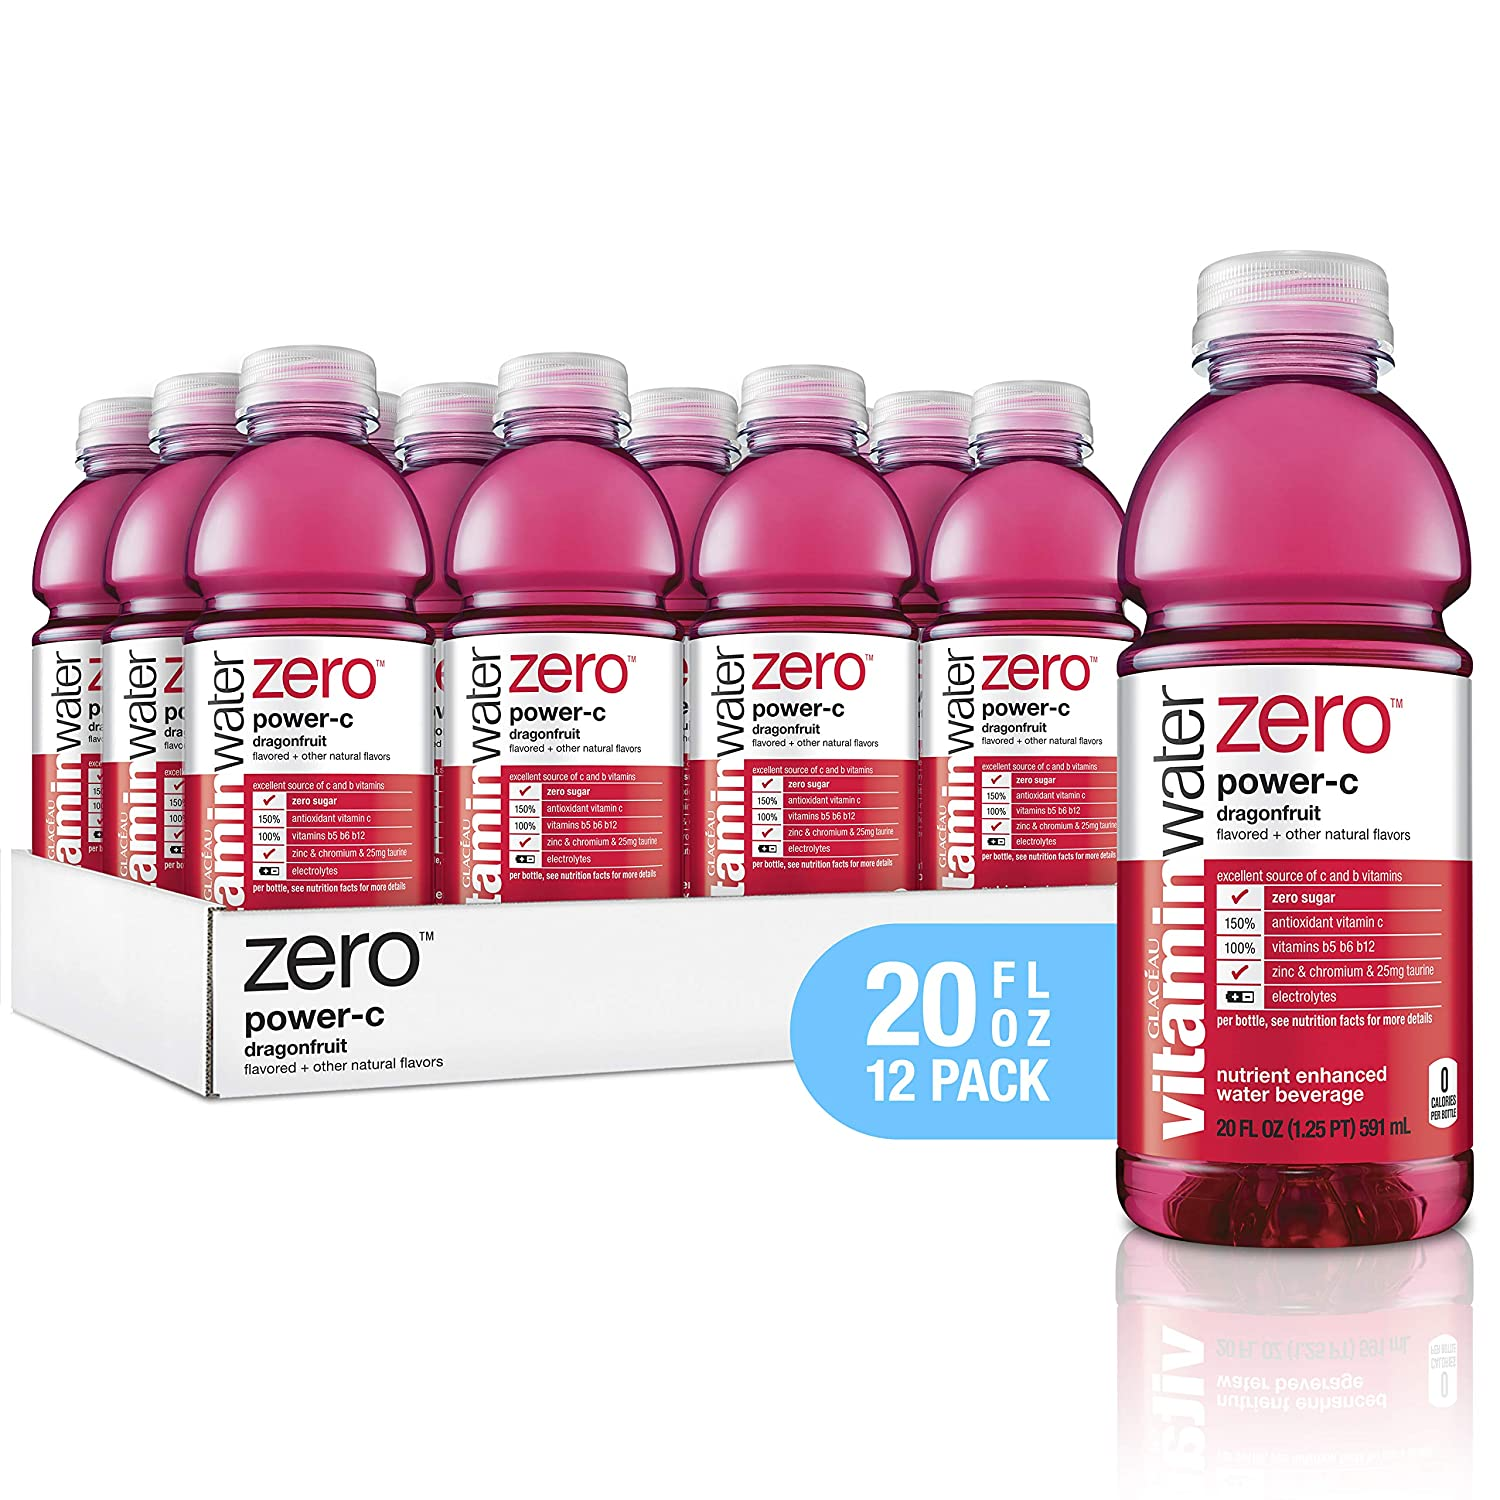 vitaminwater Electrolyte Enhanced Water with Vitamins, Zero Power-C Dragon Fruit, 20 Fluid Ounce (Pack of 12)